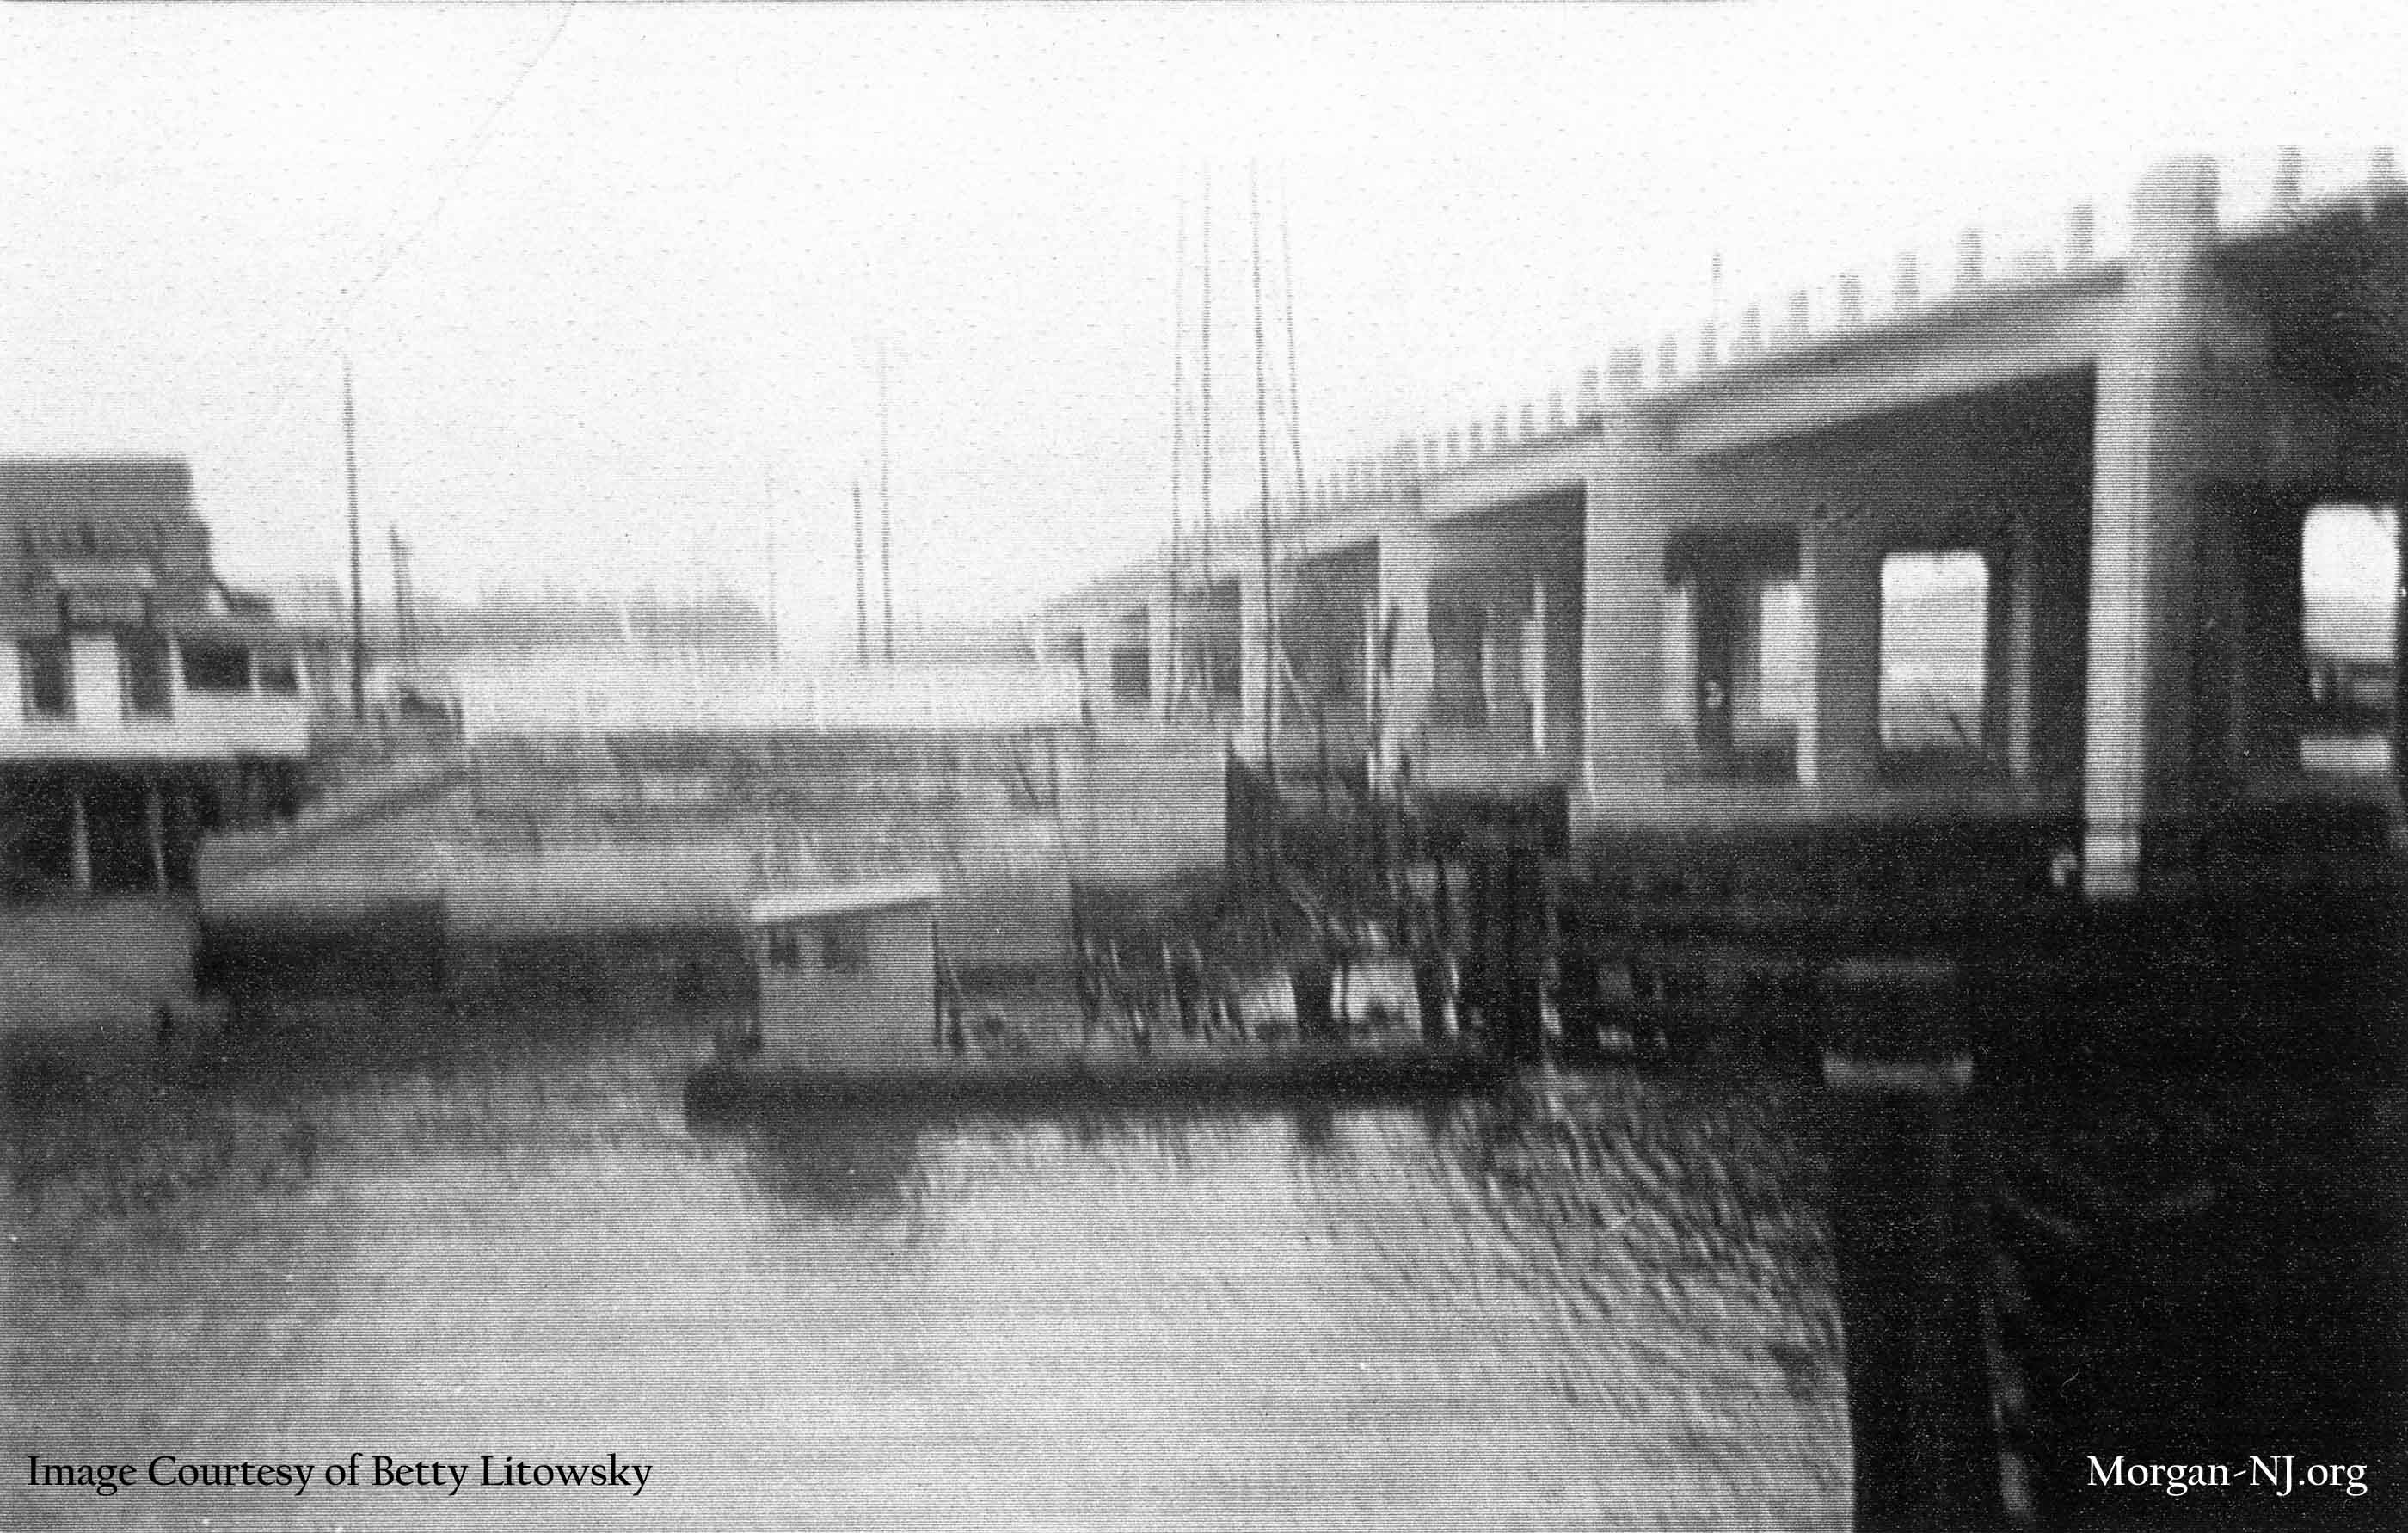 Looking Toward Morgan Beach from Robert E. Lee Inn in the 1940's sometime after 1943. Kaiser's Tavern on the left, old Route 35 in the center, new (and current) Route 35 Morgan Bridge on the right. Image courtesy of Betty Macrae Litowsky.